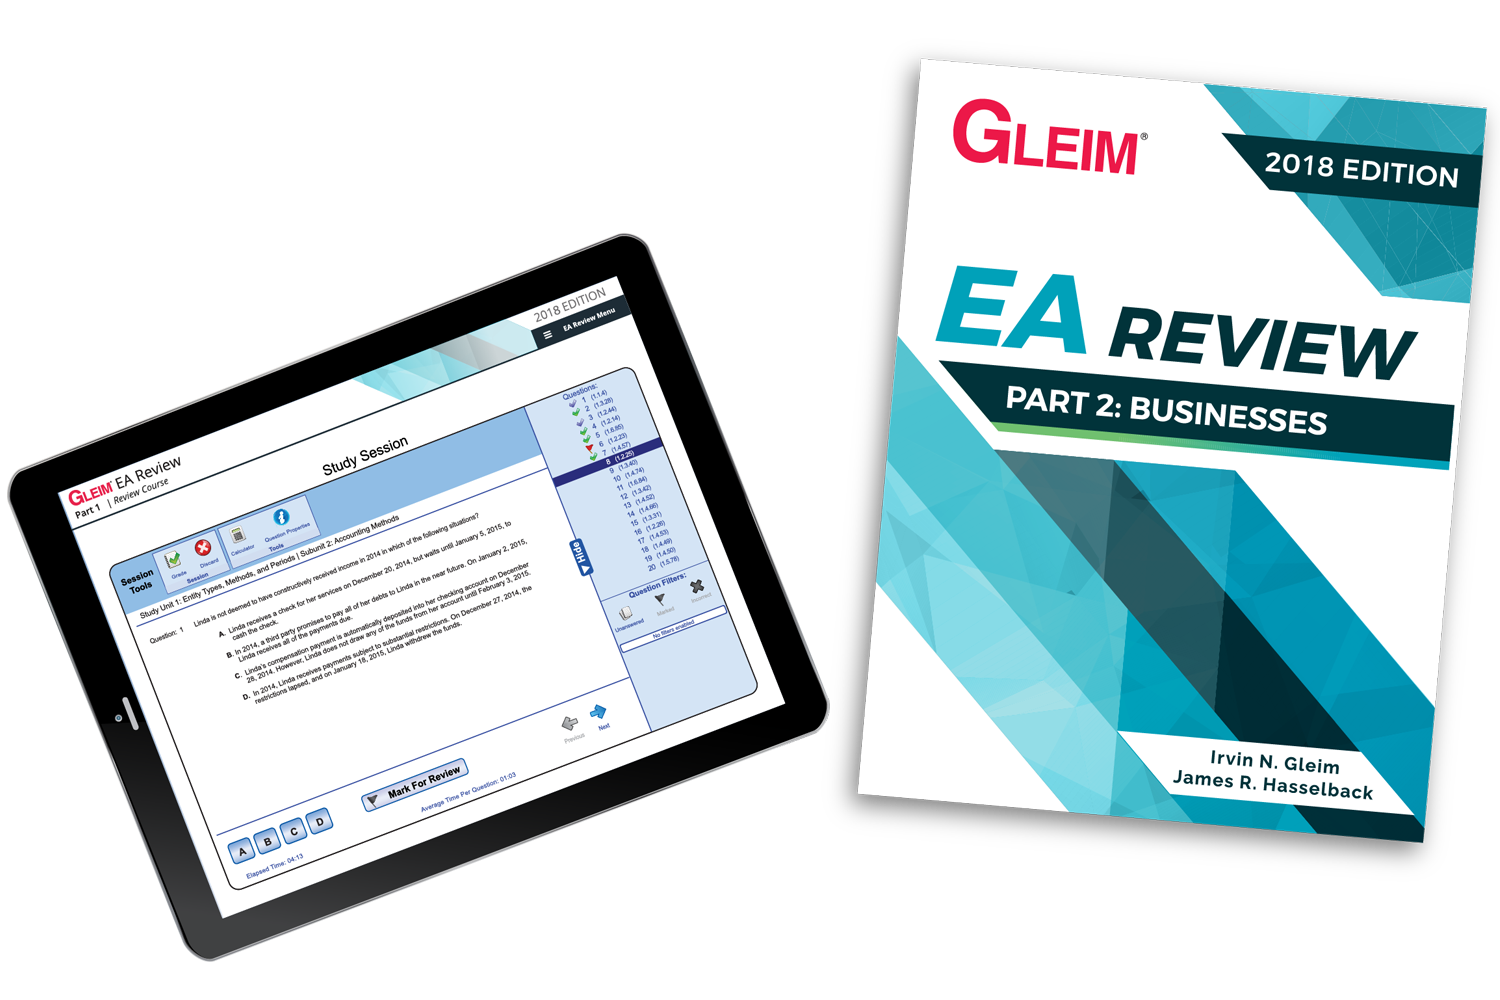 Gleim EA Review Book & Test Prep Online – Part 2 (2018) - #OAB3862S